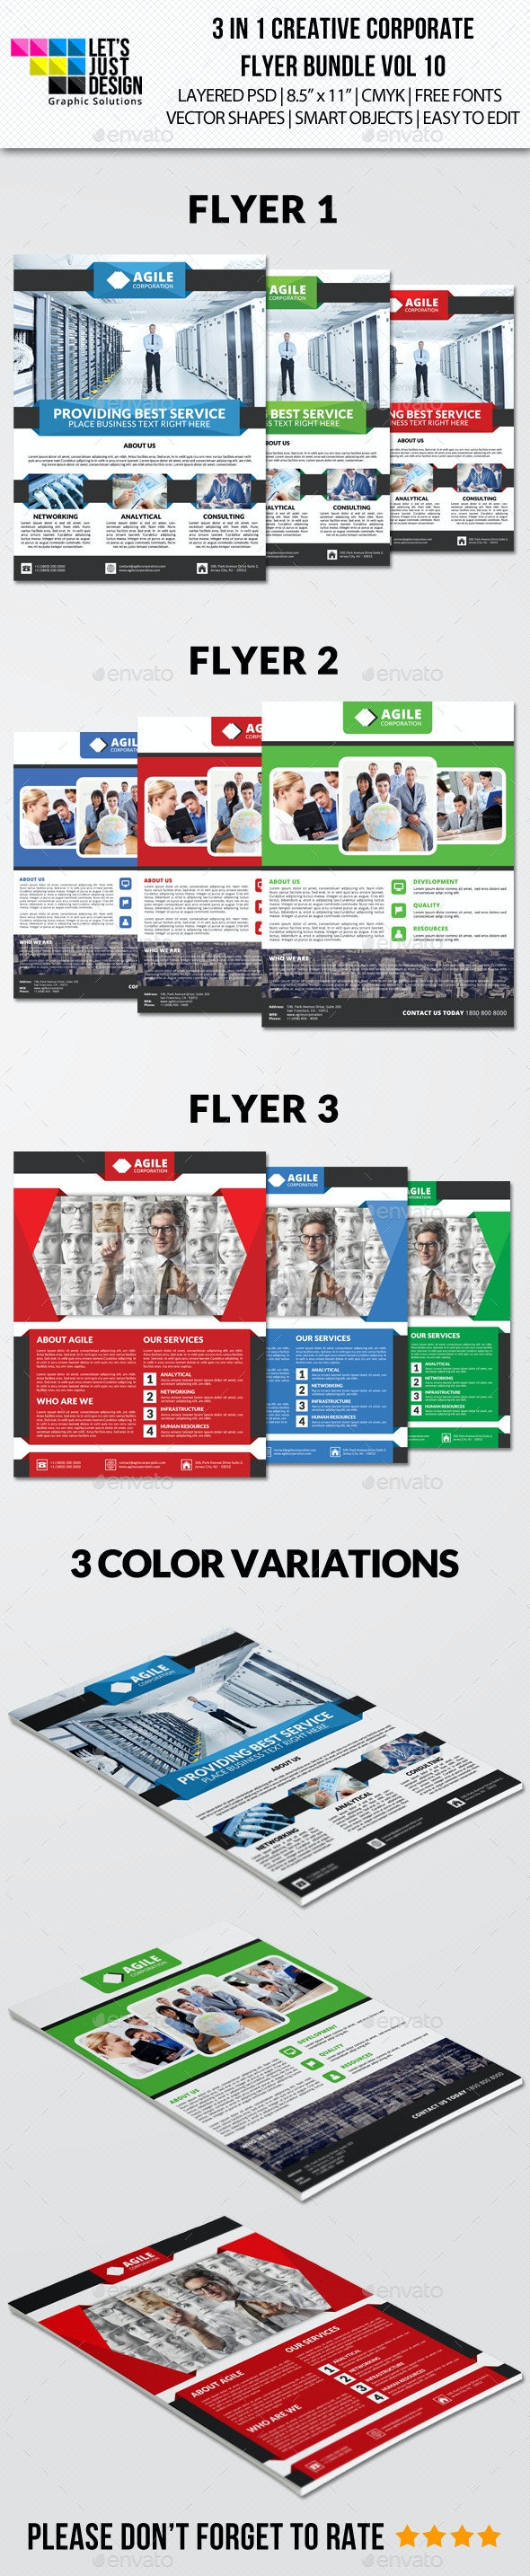 Creative Corporate Flyer Pack Vol 10 - Corporate Flyers